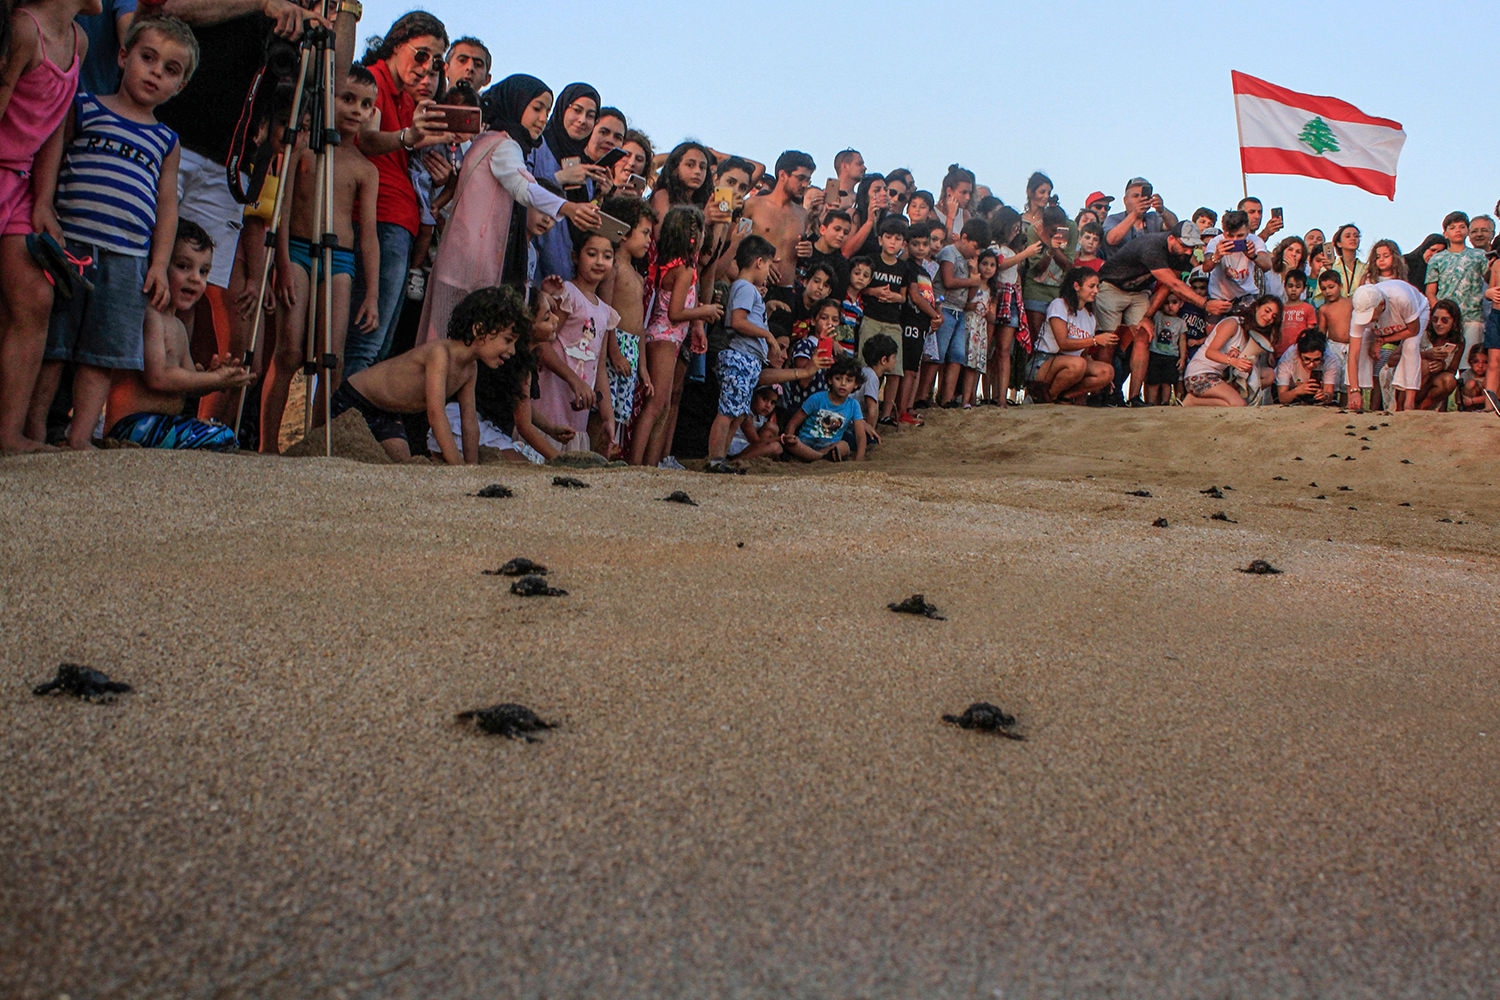 Lebanese beachgoers watch as small turtles crawl on the sandy beach of al-Mansouri near Lebanon's southern city of Tyre on July 31. MAHMOUD ZAYYAT/AFP/Getty Images